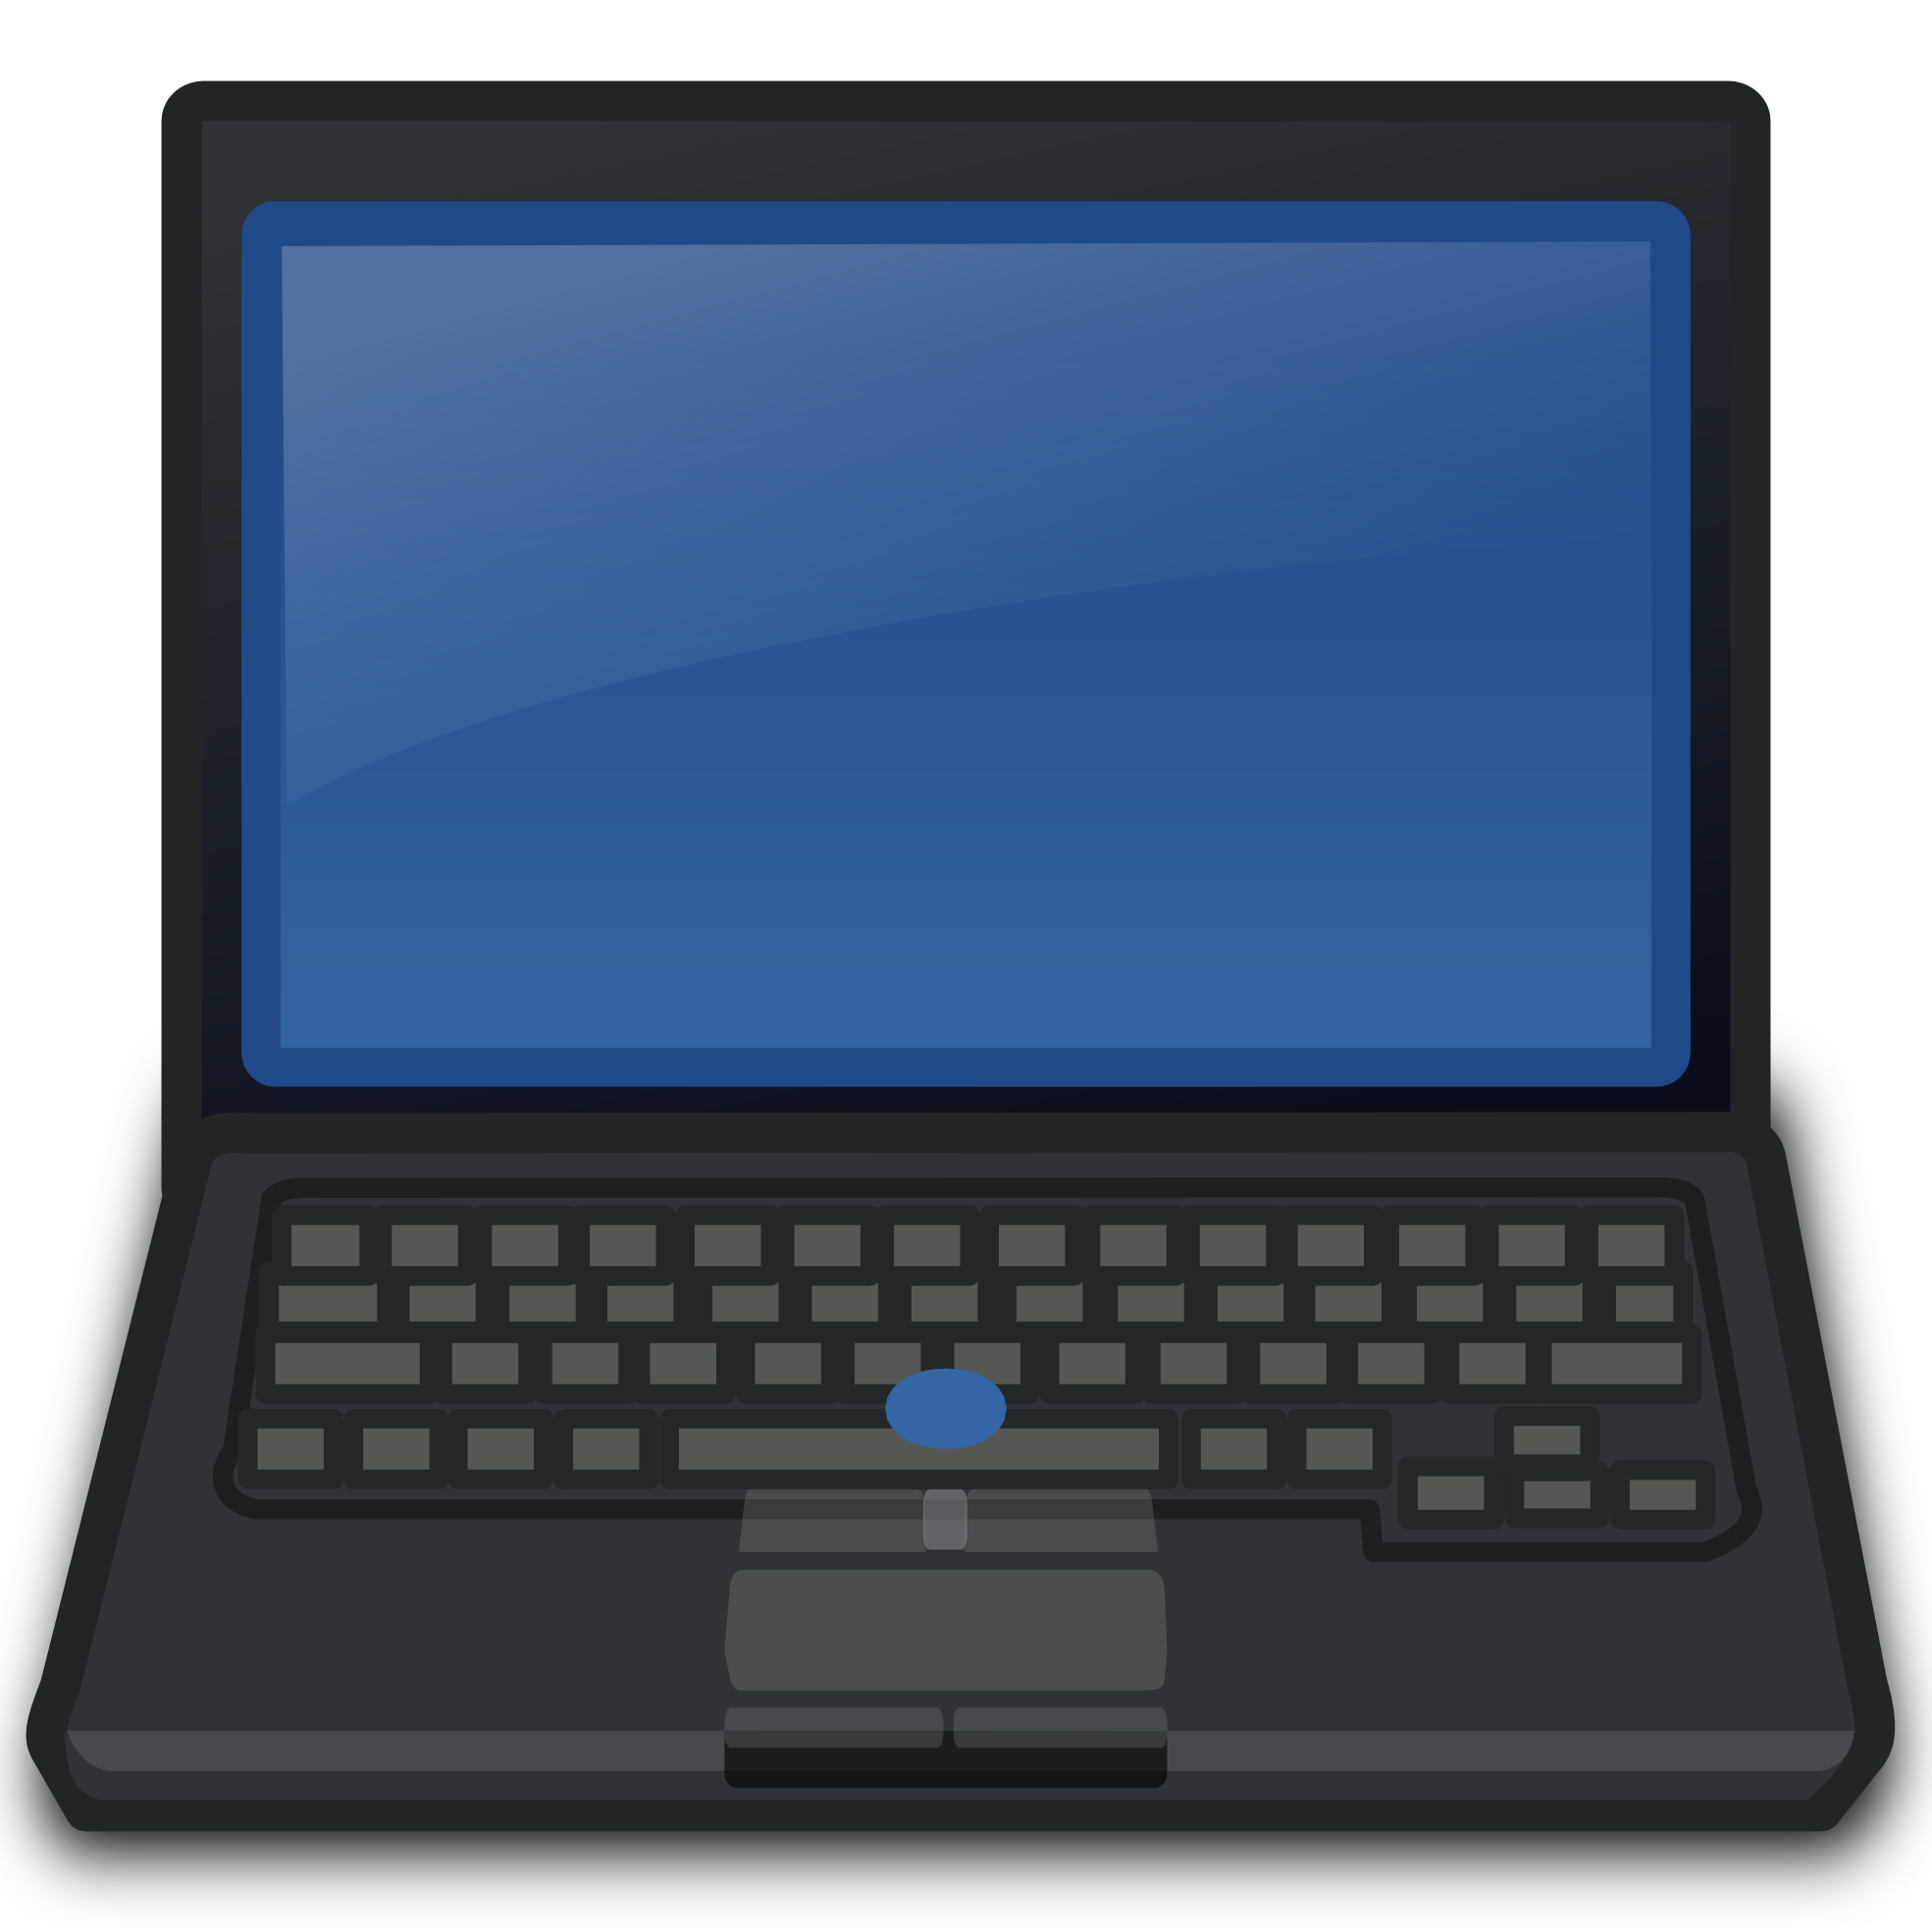 Laptop clipart #16, Download drawings